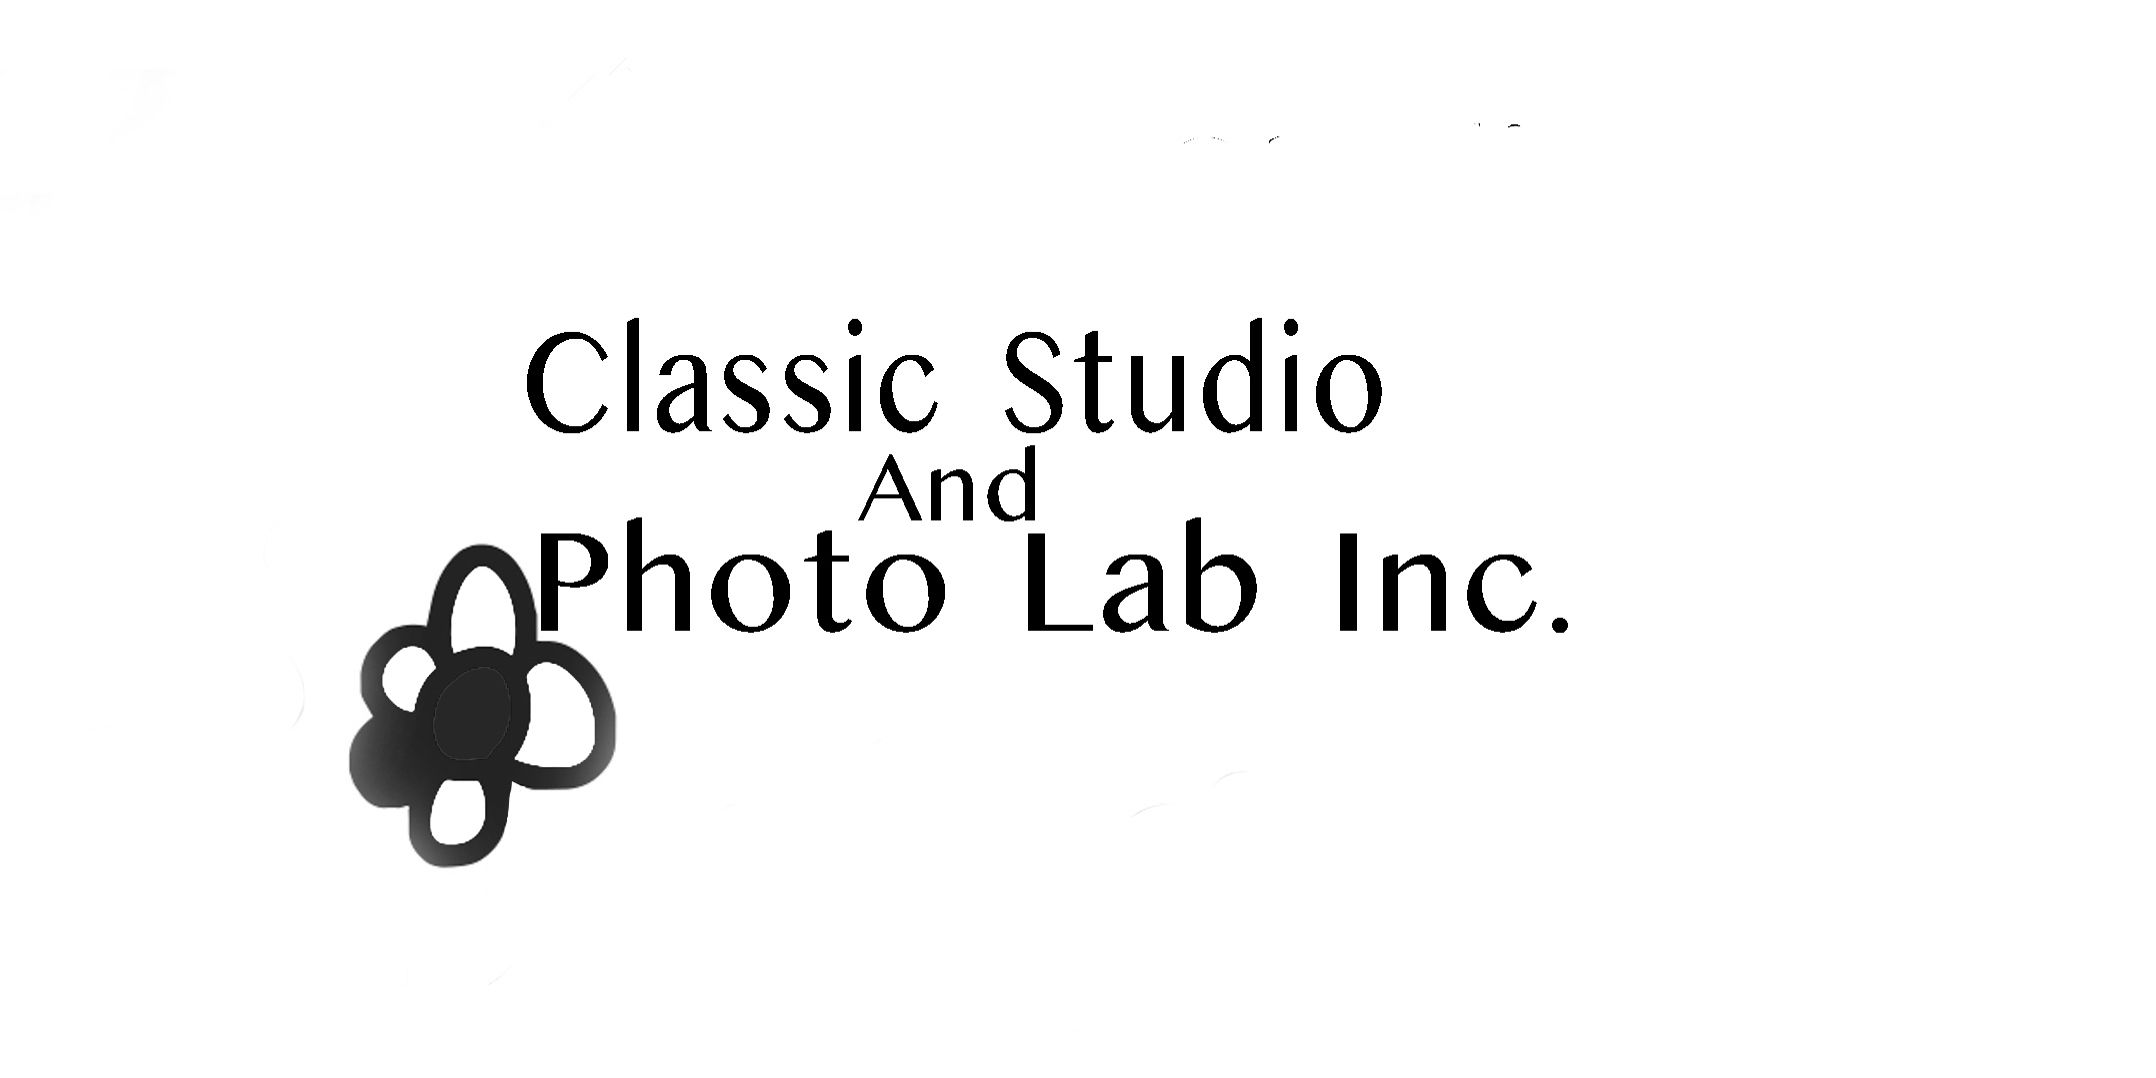 Classic Studio And Photo Lab Inc Logo